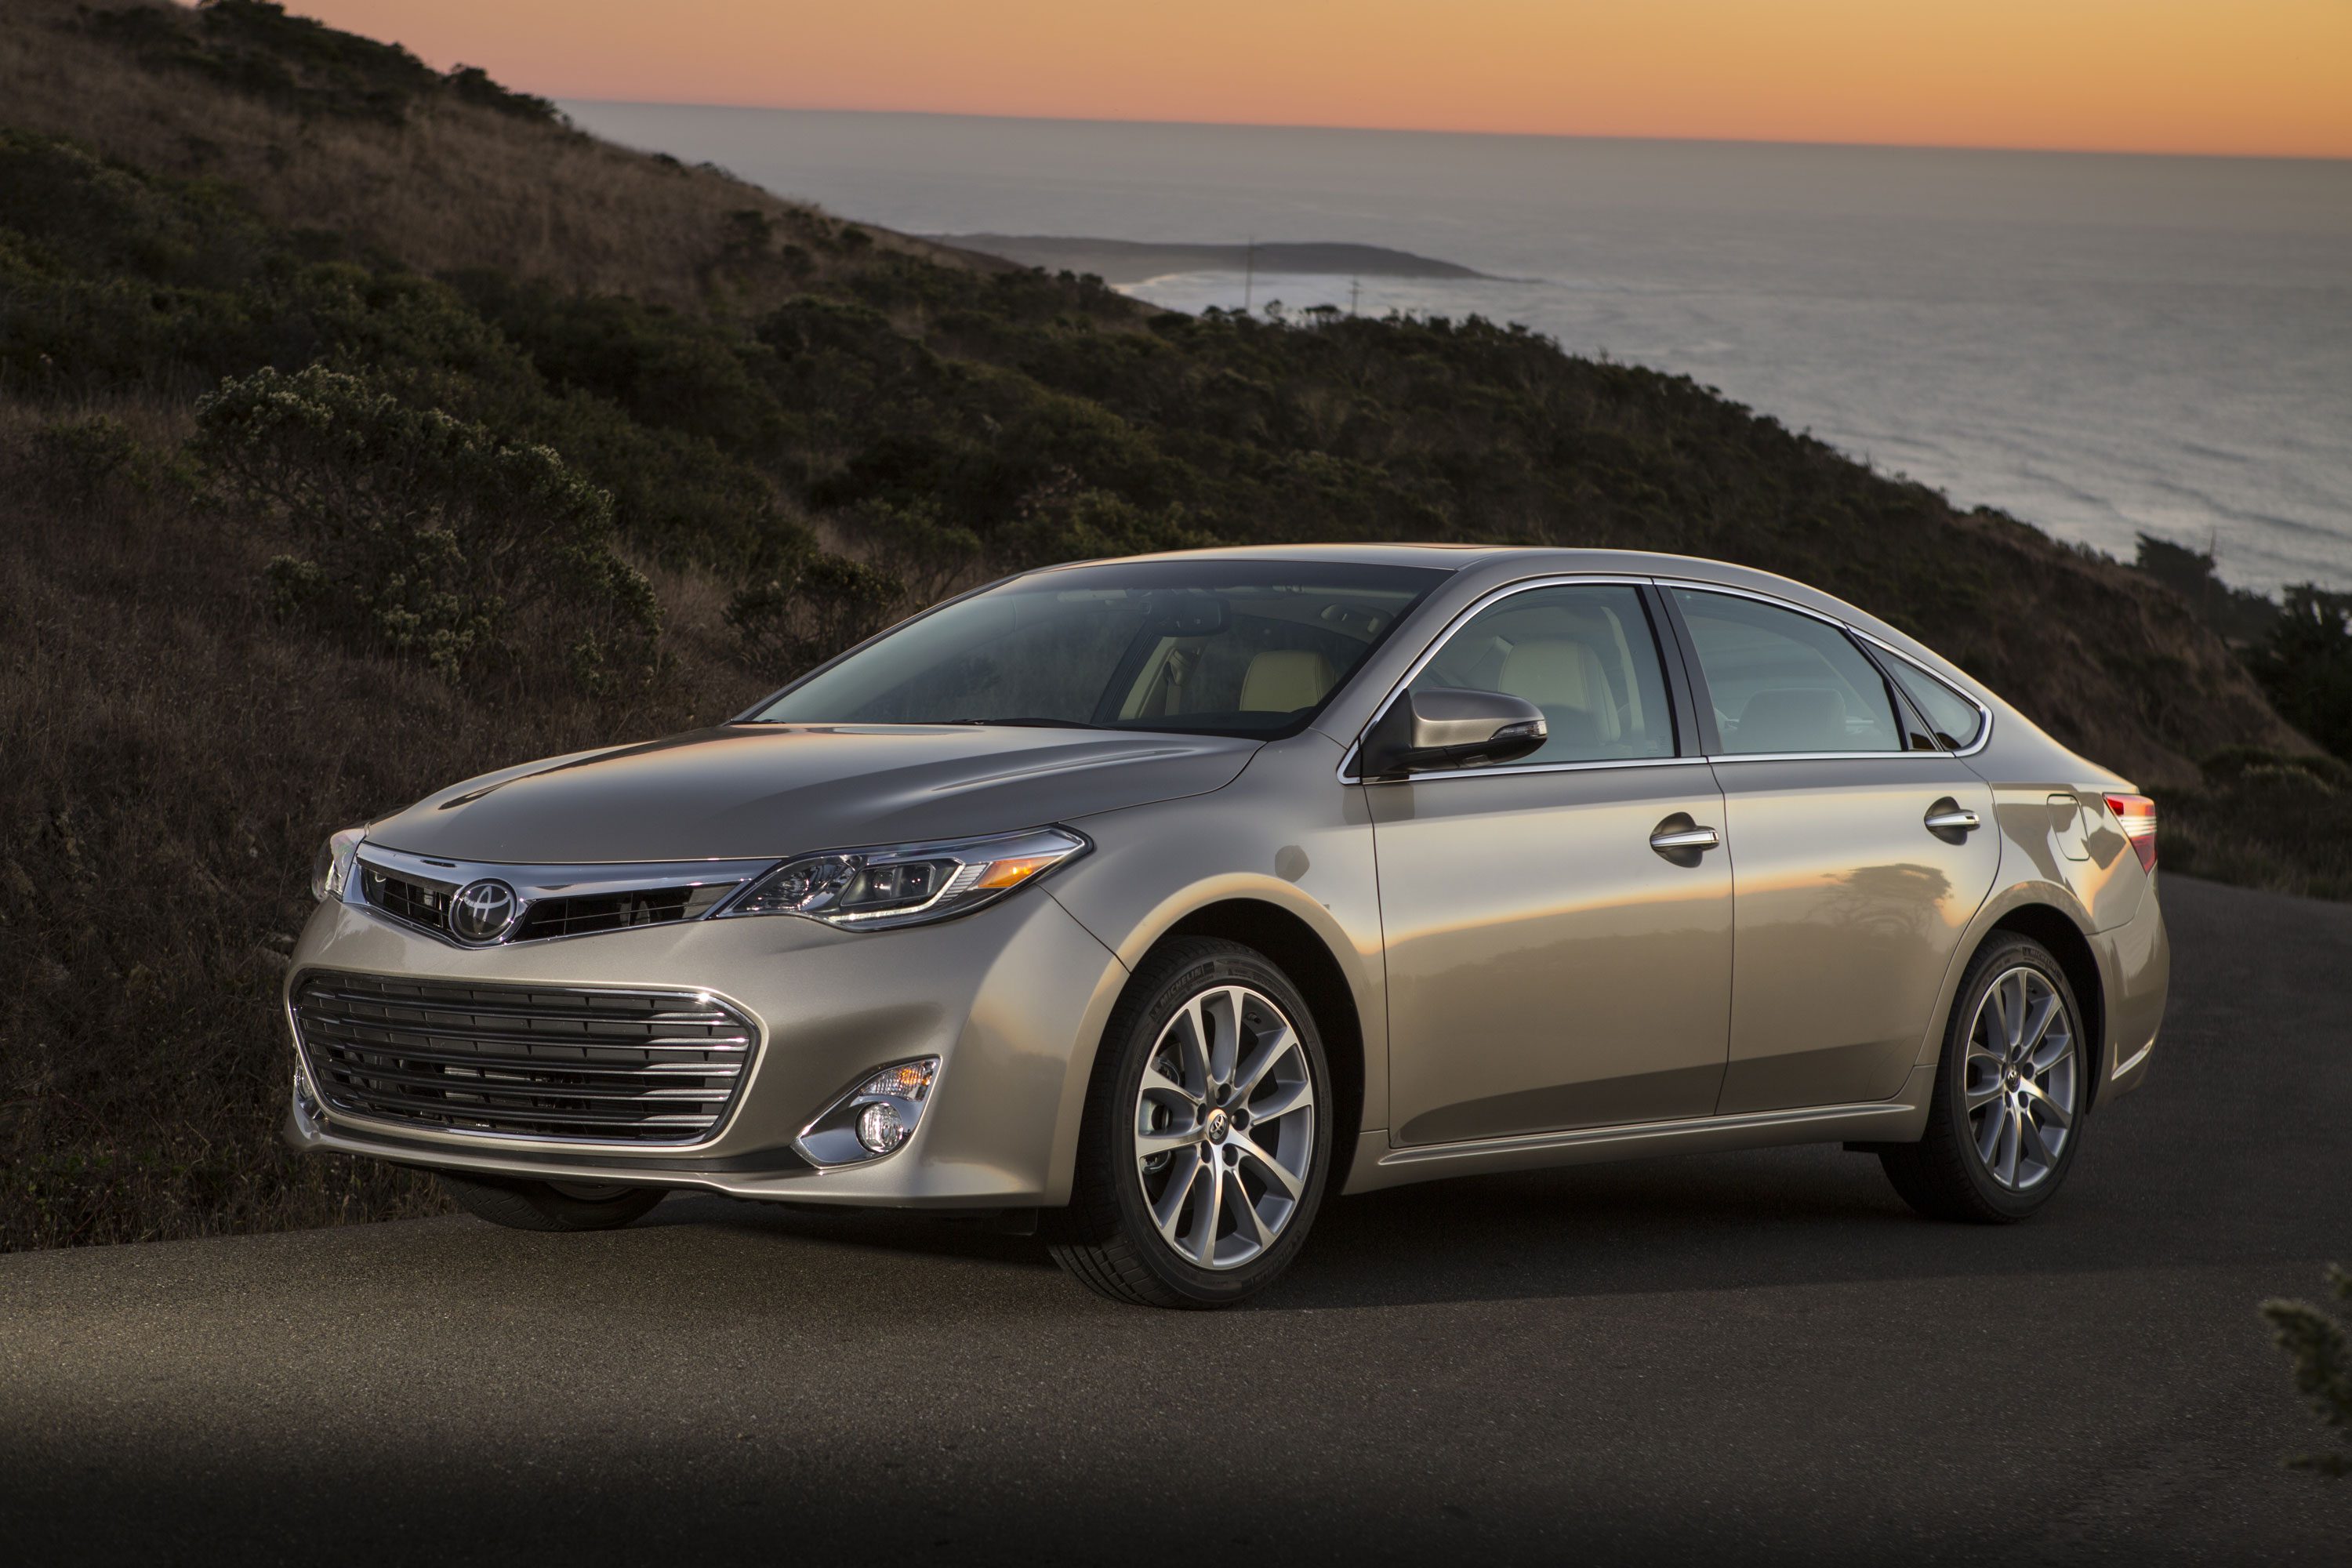 Dodge El Paso >> 2014 Toyota Avalon Review, Ratings, Specs, Prices, and ...